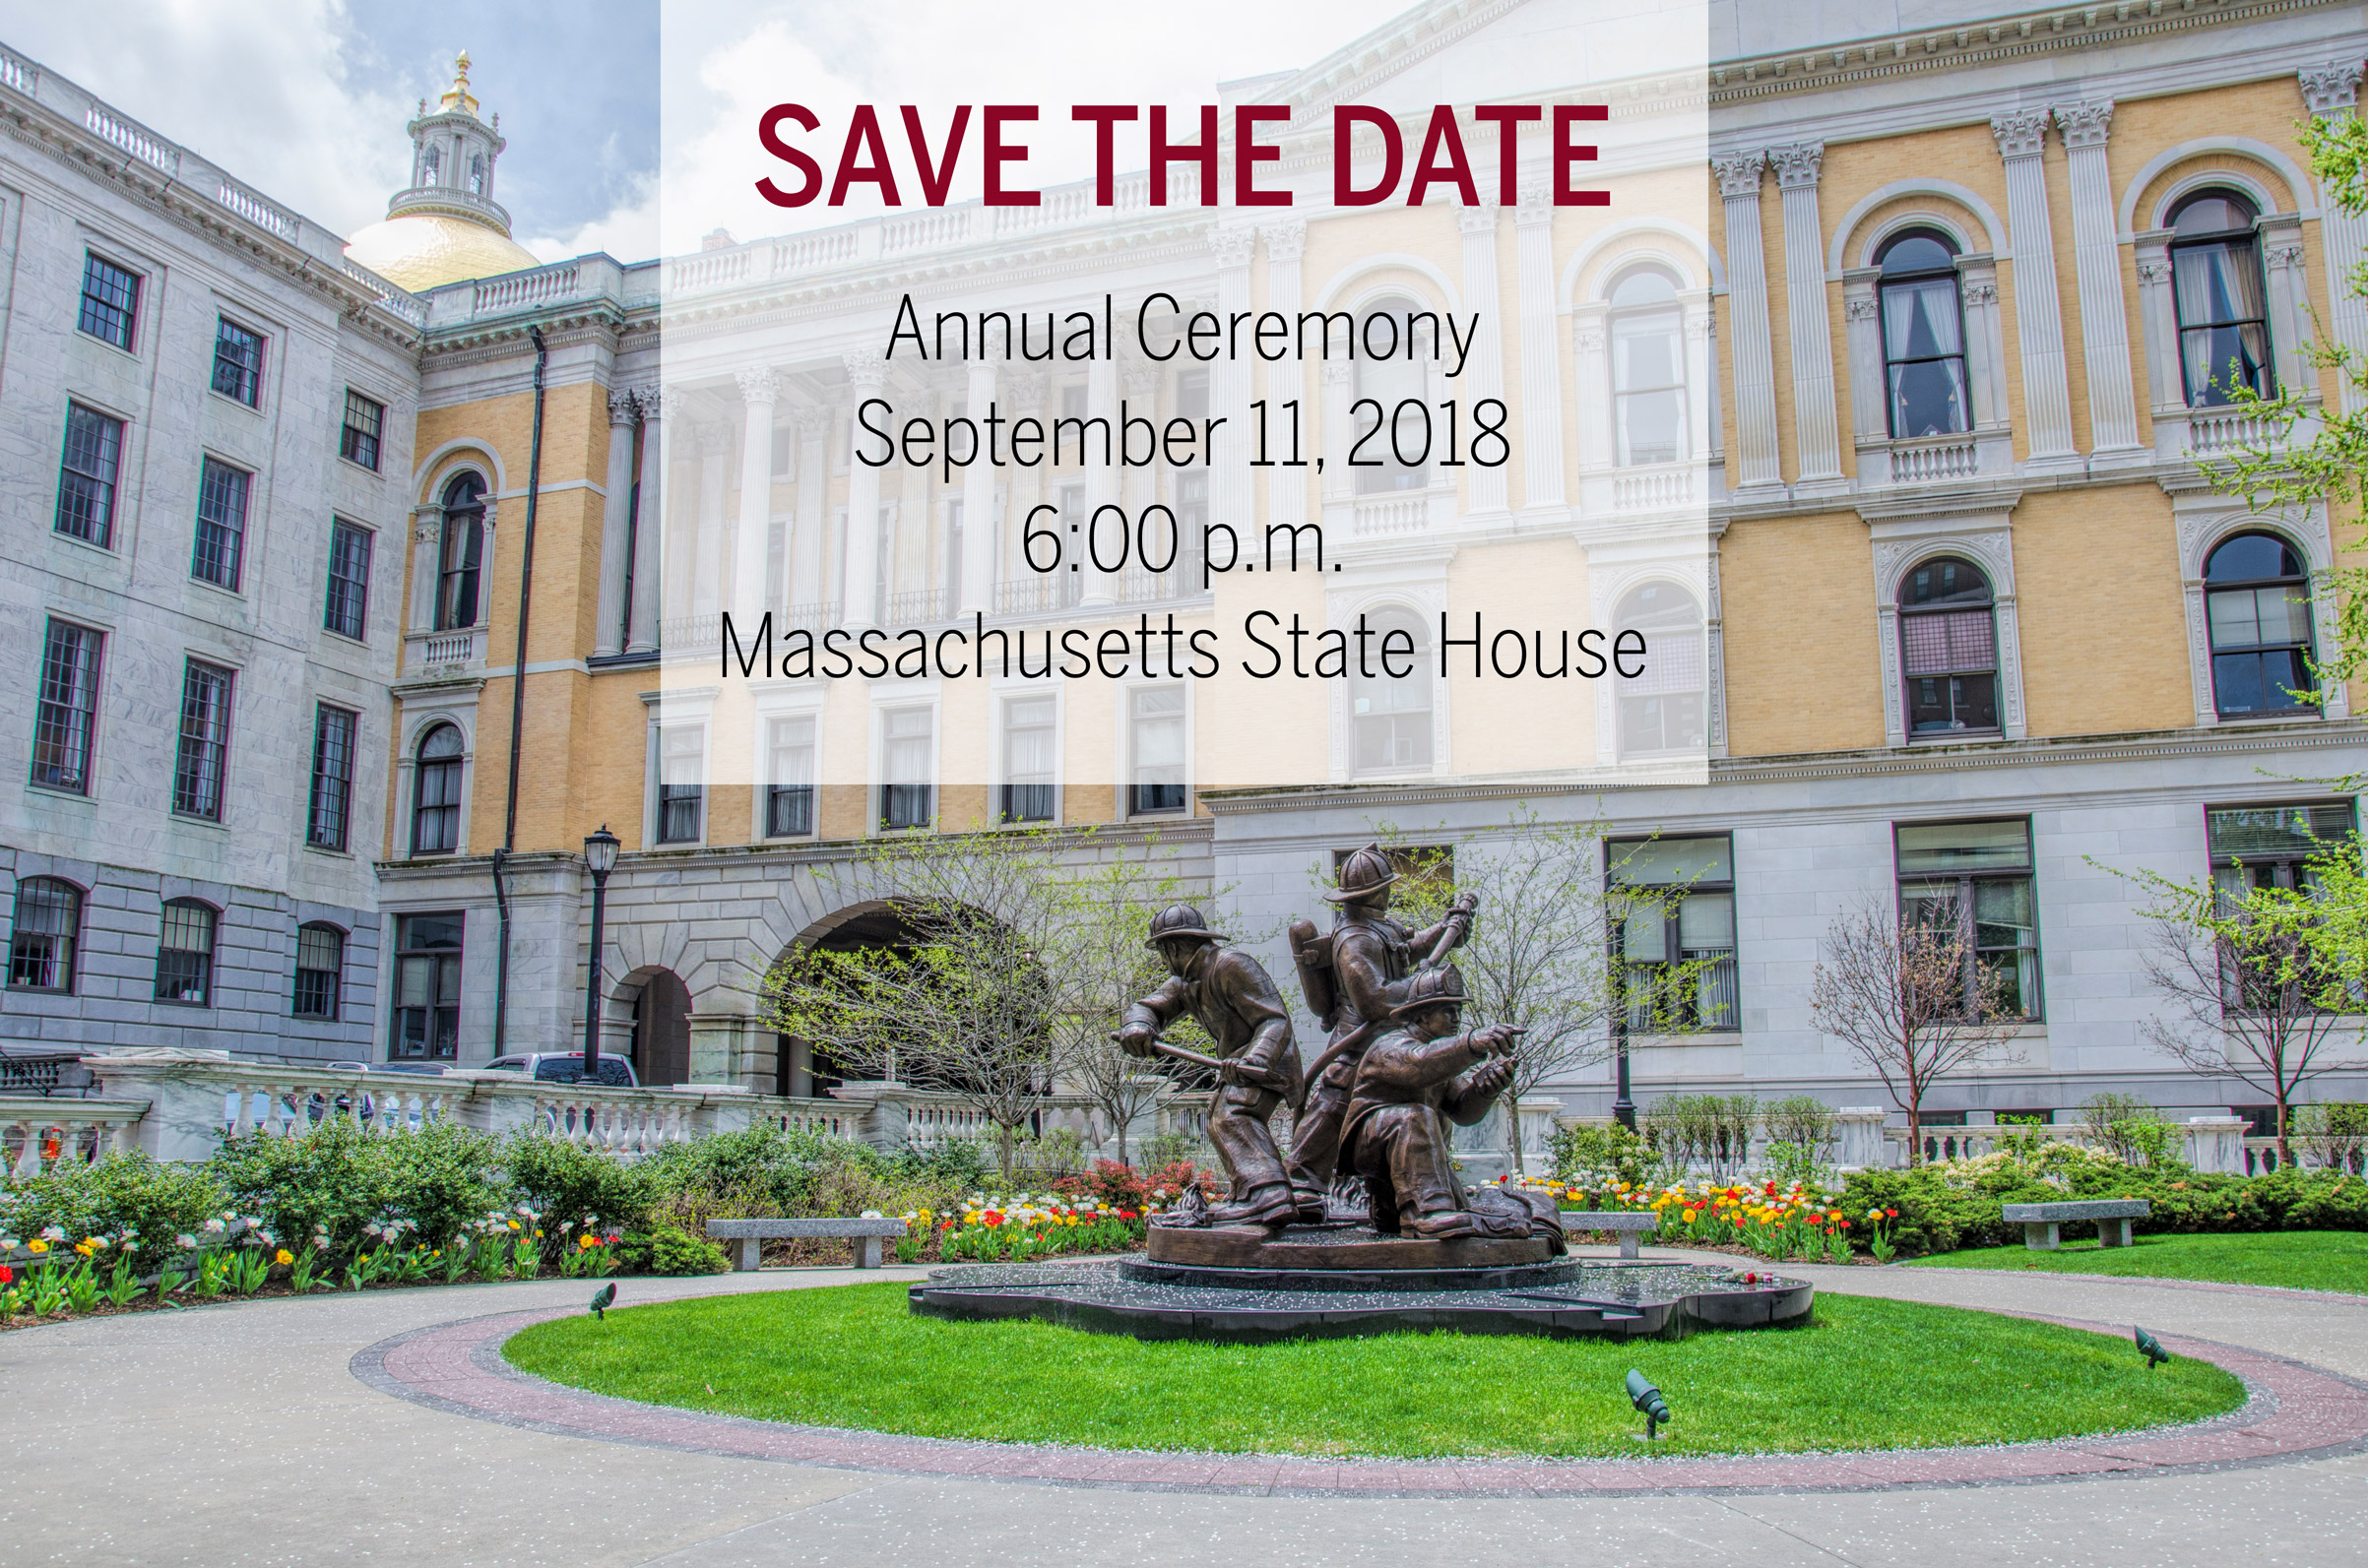 SAVE THE DATE Annual ceremony September 11, 2018 6pm Massachusetts State House